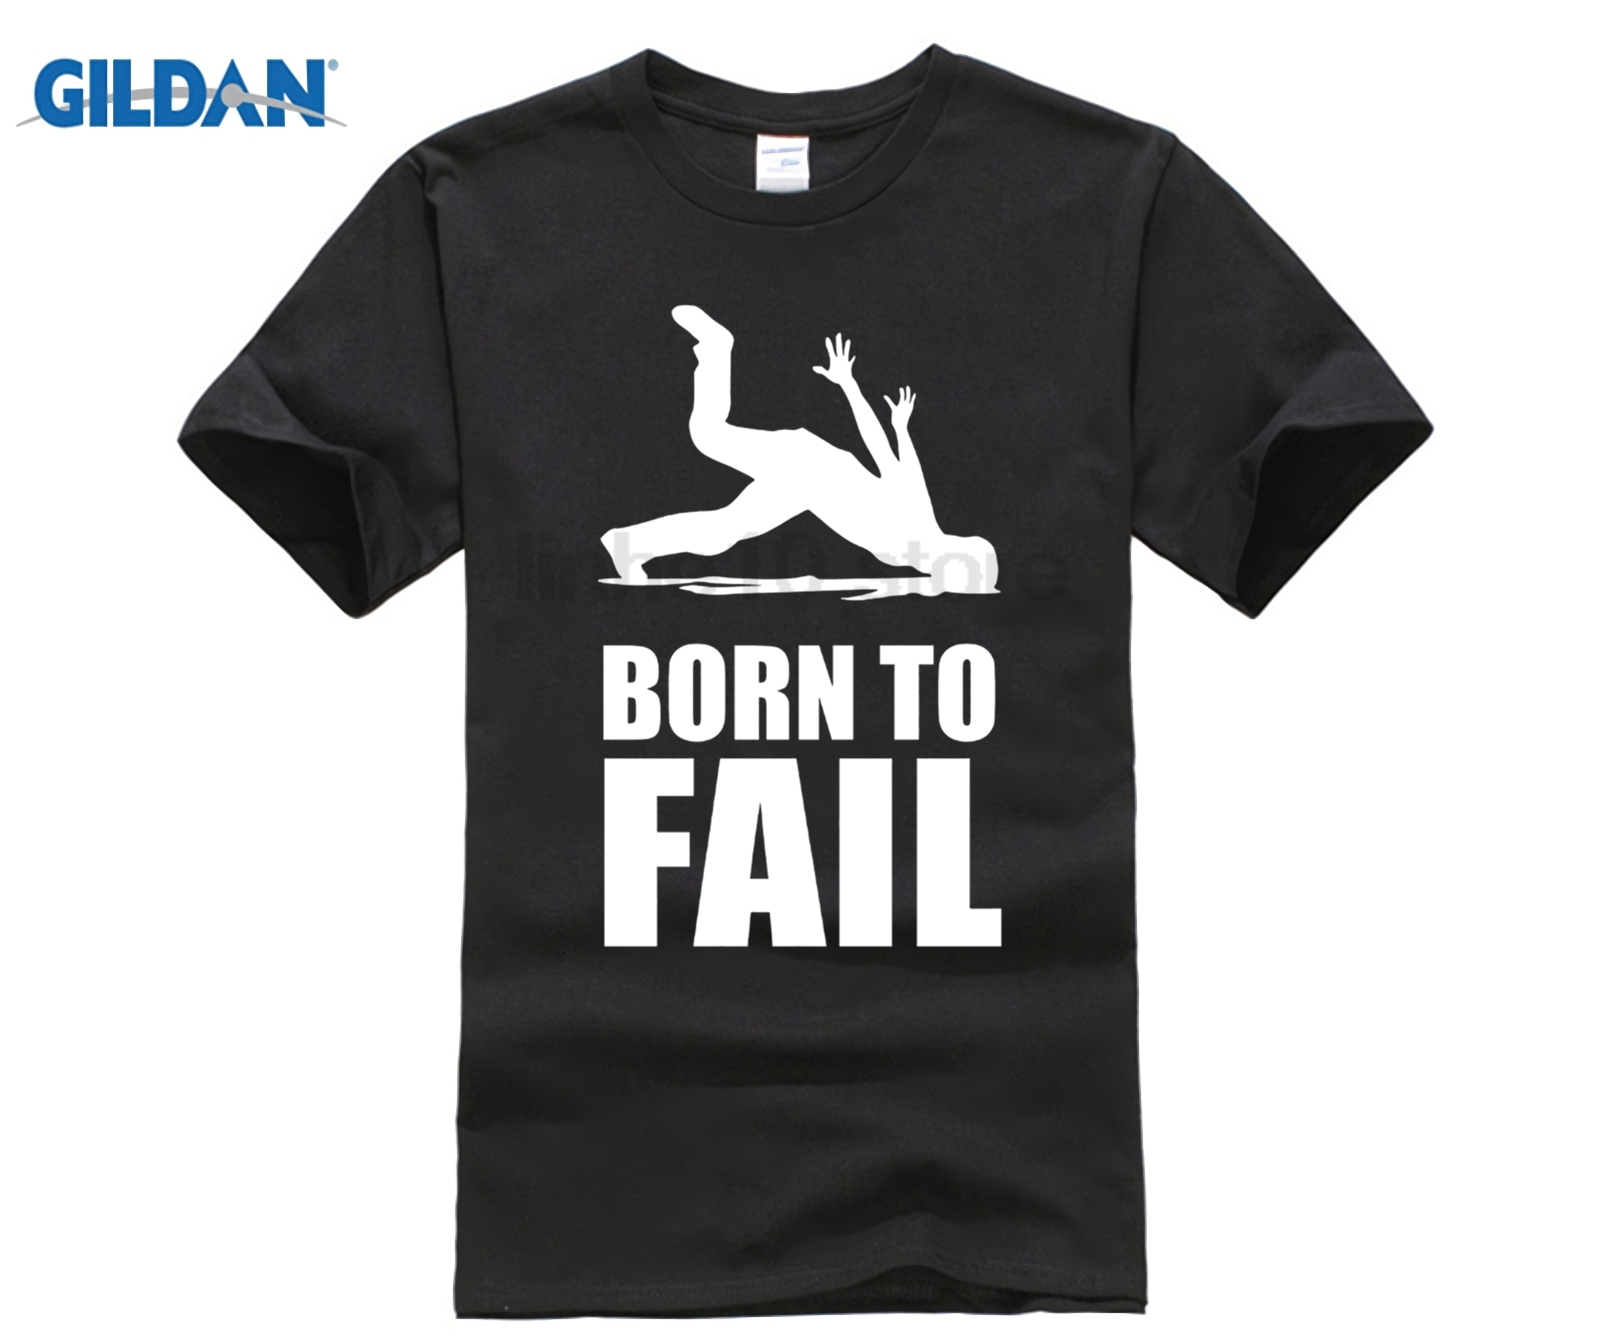 GILDAN 2018 Hot Sale 100% cotton Design T-Shirt Born to Fail Failer Misfortune Fun Funny Failure Dress female T-shirt